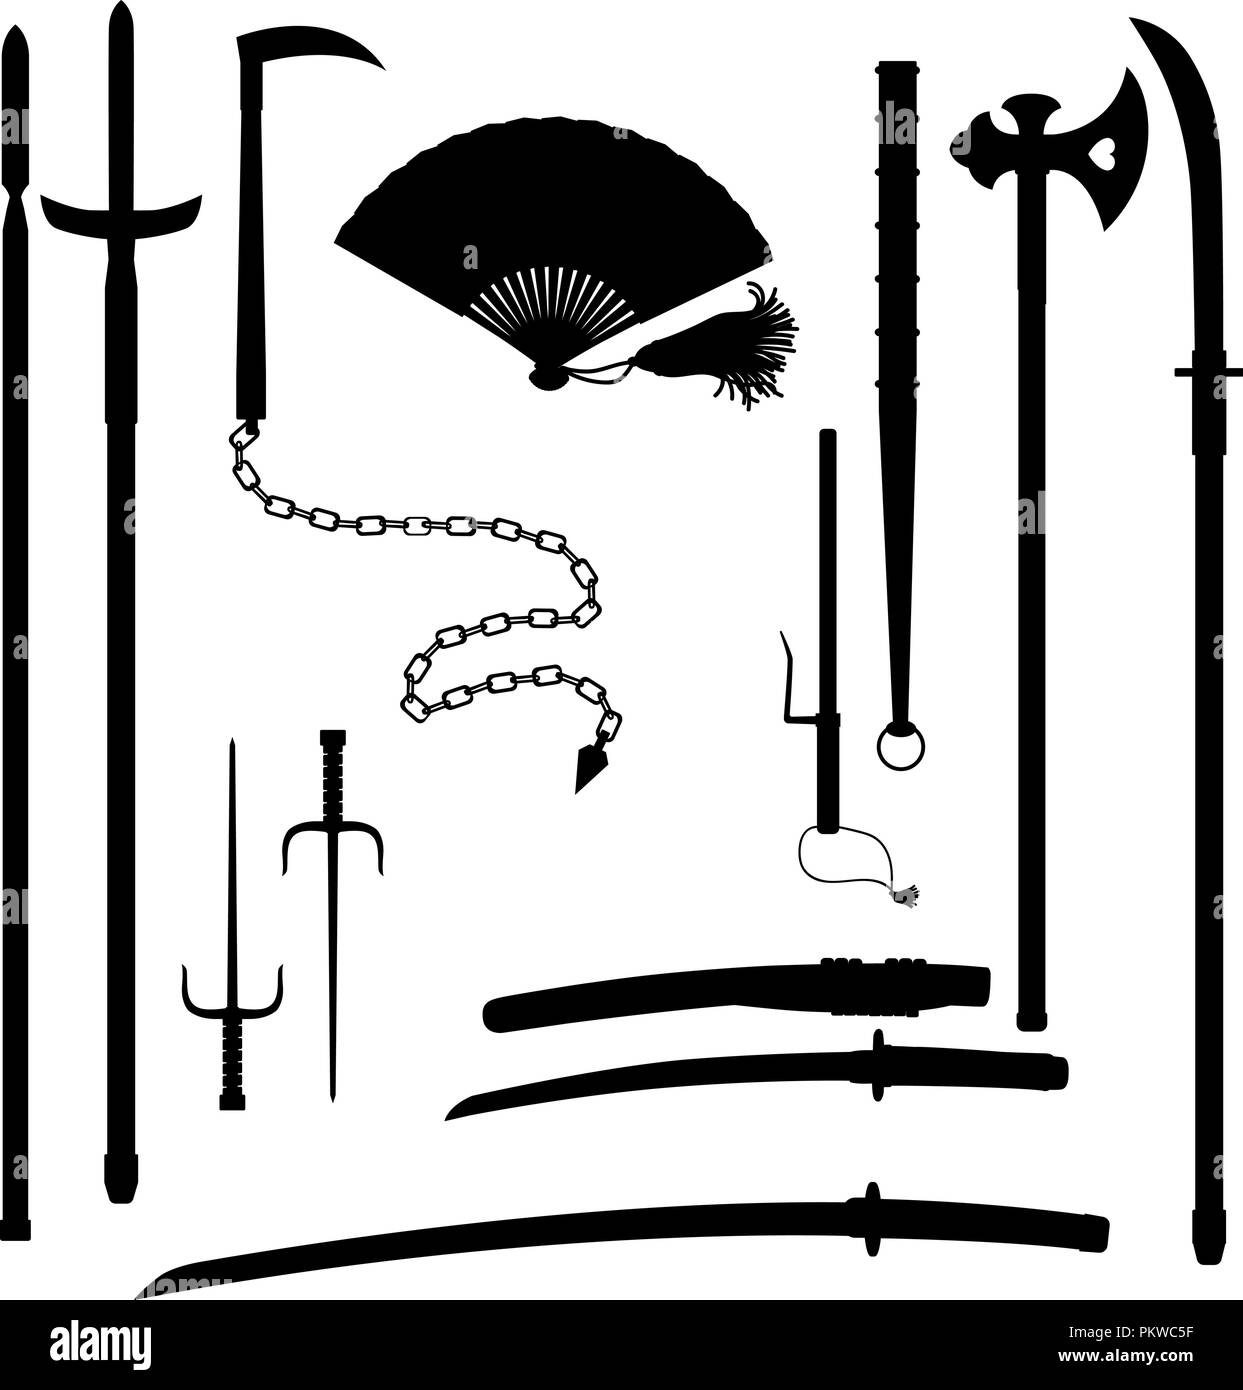 Japanese medieval samurai weapon outline isolated on white